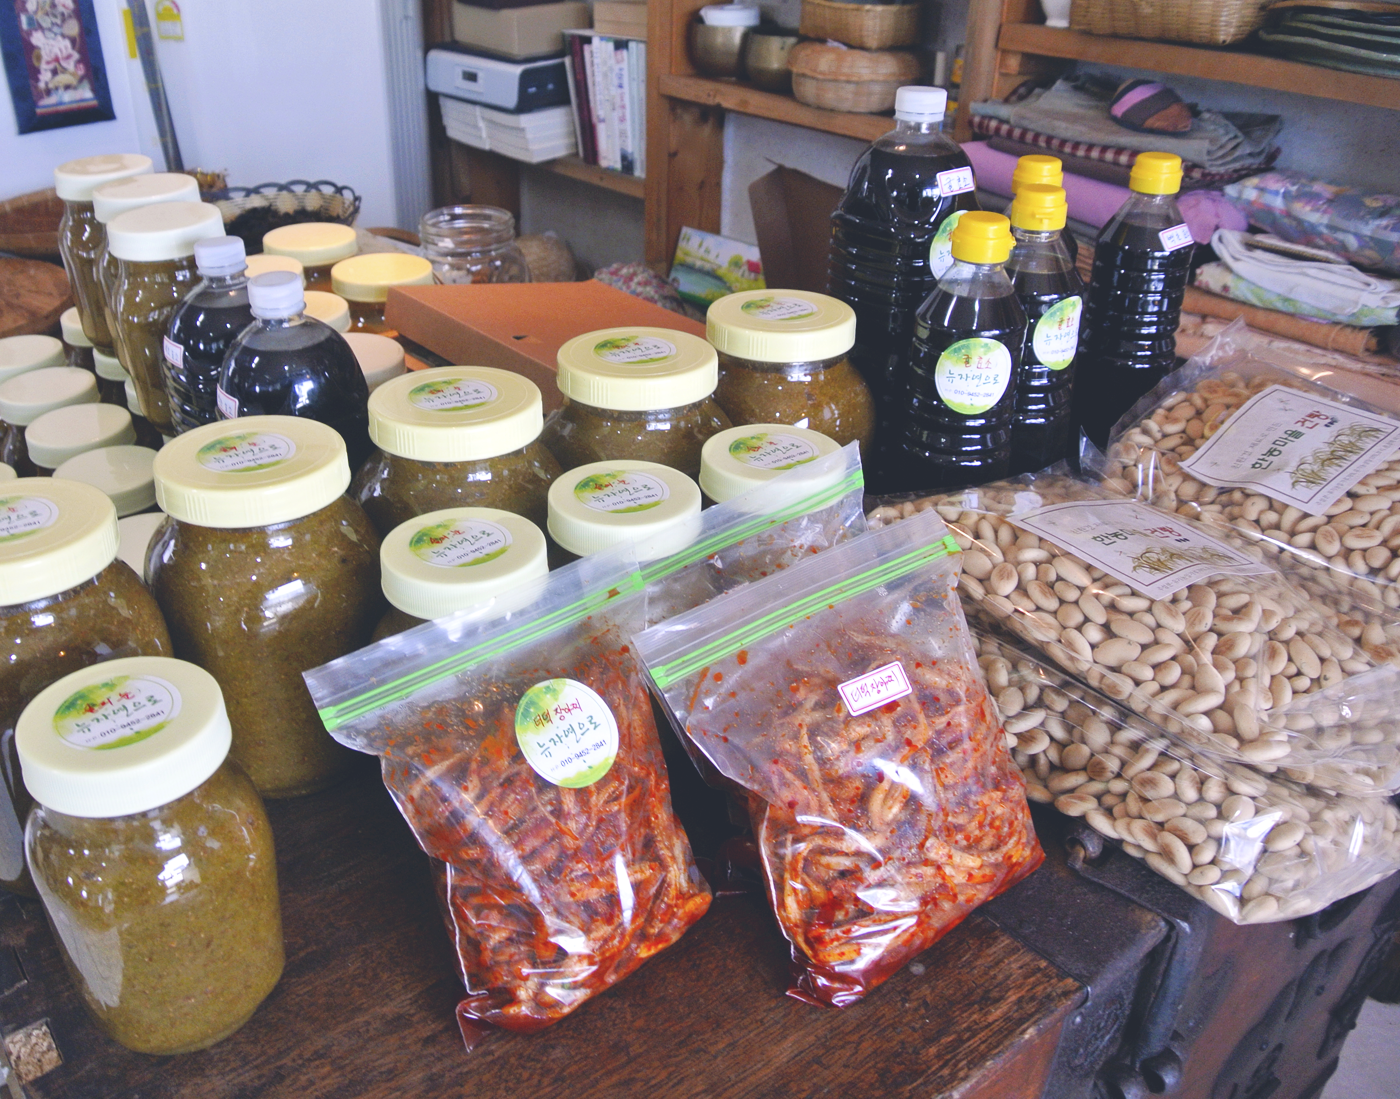 The restaurant 'Jayeoneuro' on Jeju also sells side dishes, snacks, oils, extracts, and teas depending on the season.